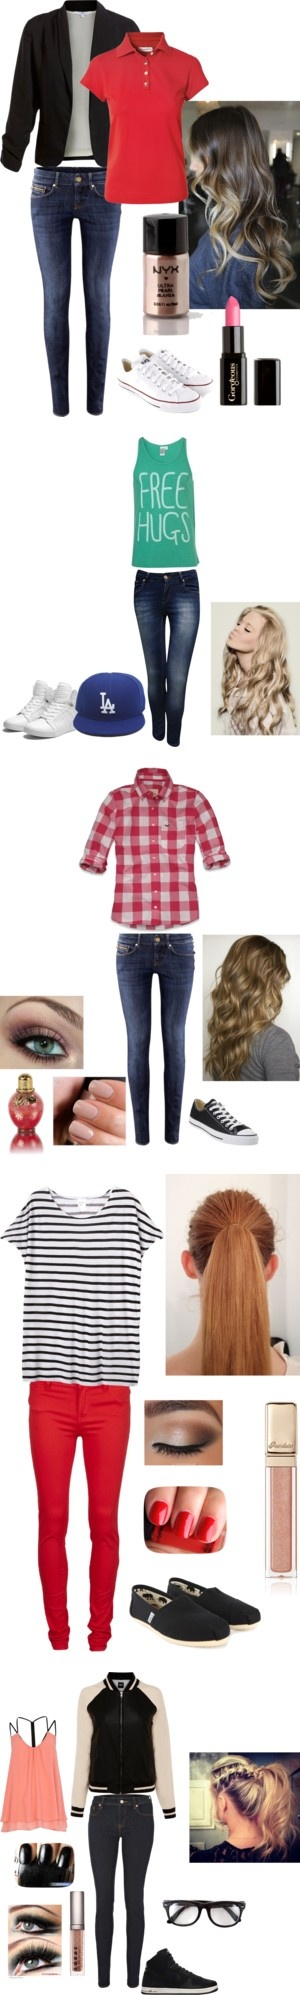 """""""One Direction Inspired"""" by rachel-starr-johnston ❤ liked on Polyvore"""